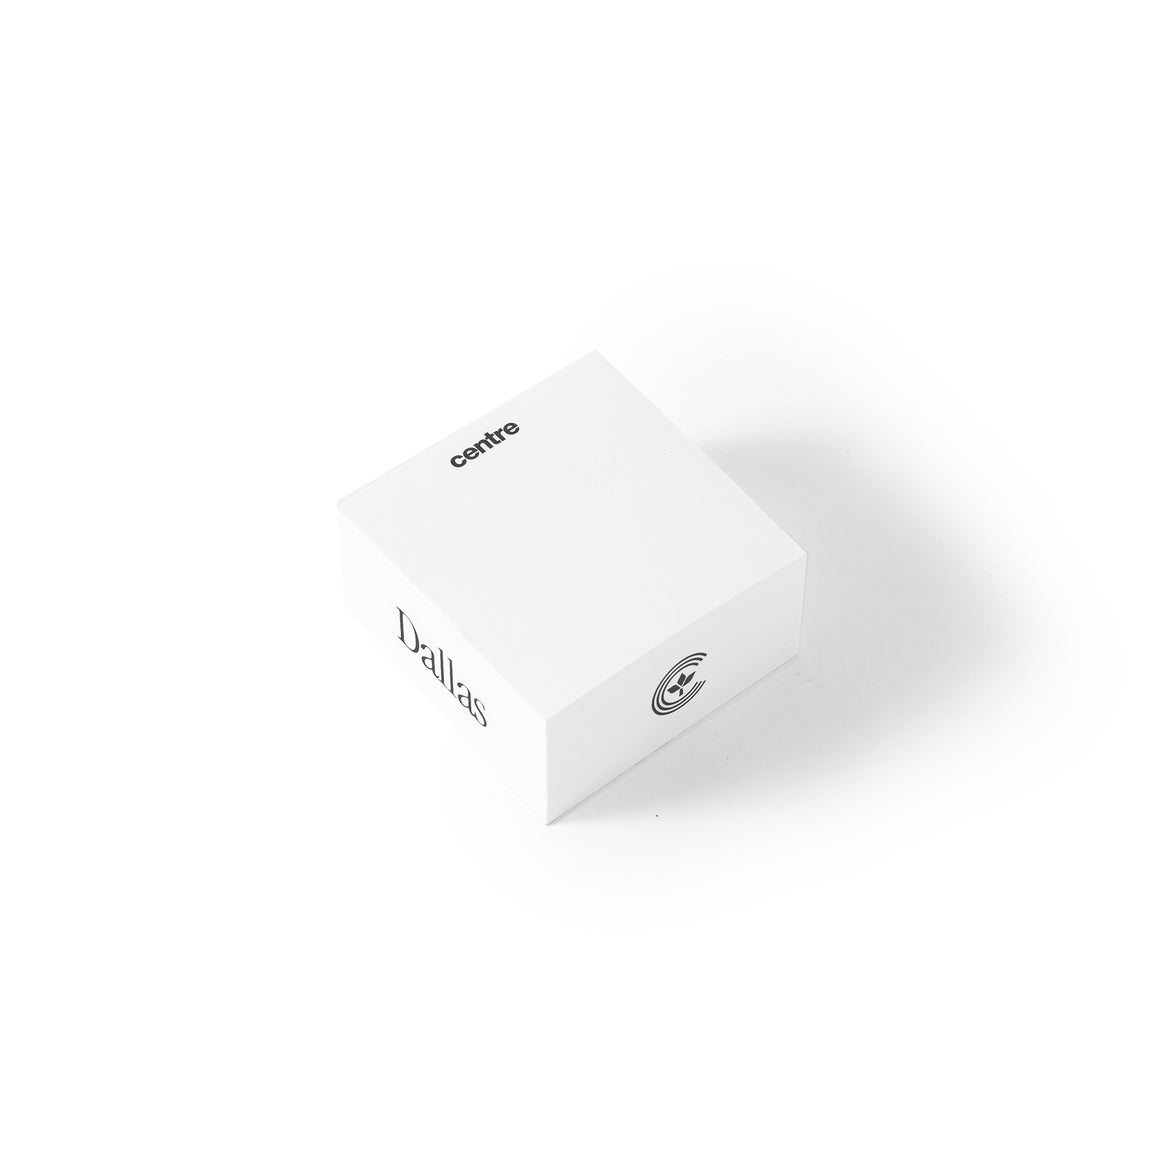 Centre Post-It Cube - Centre Post-It Cube -